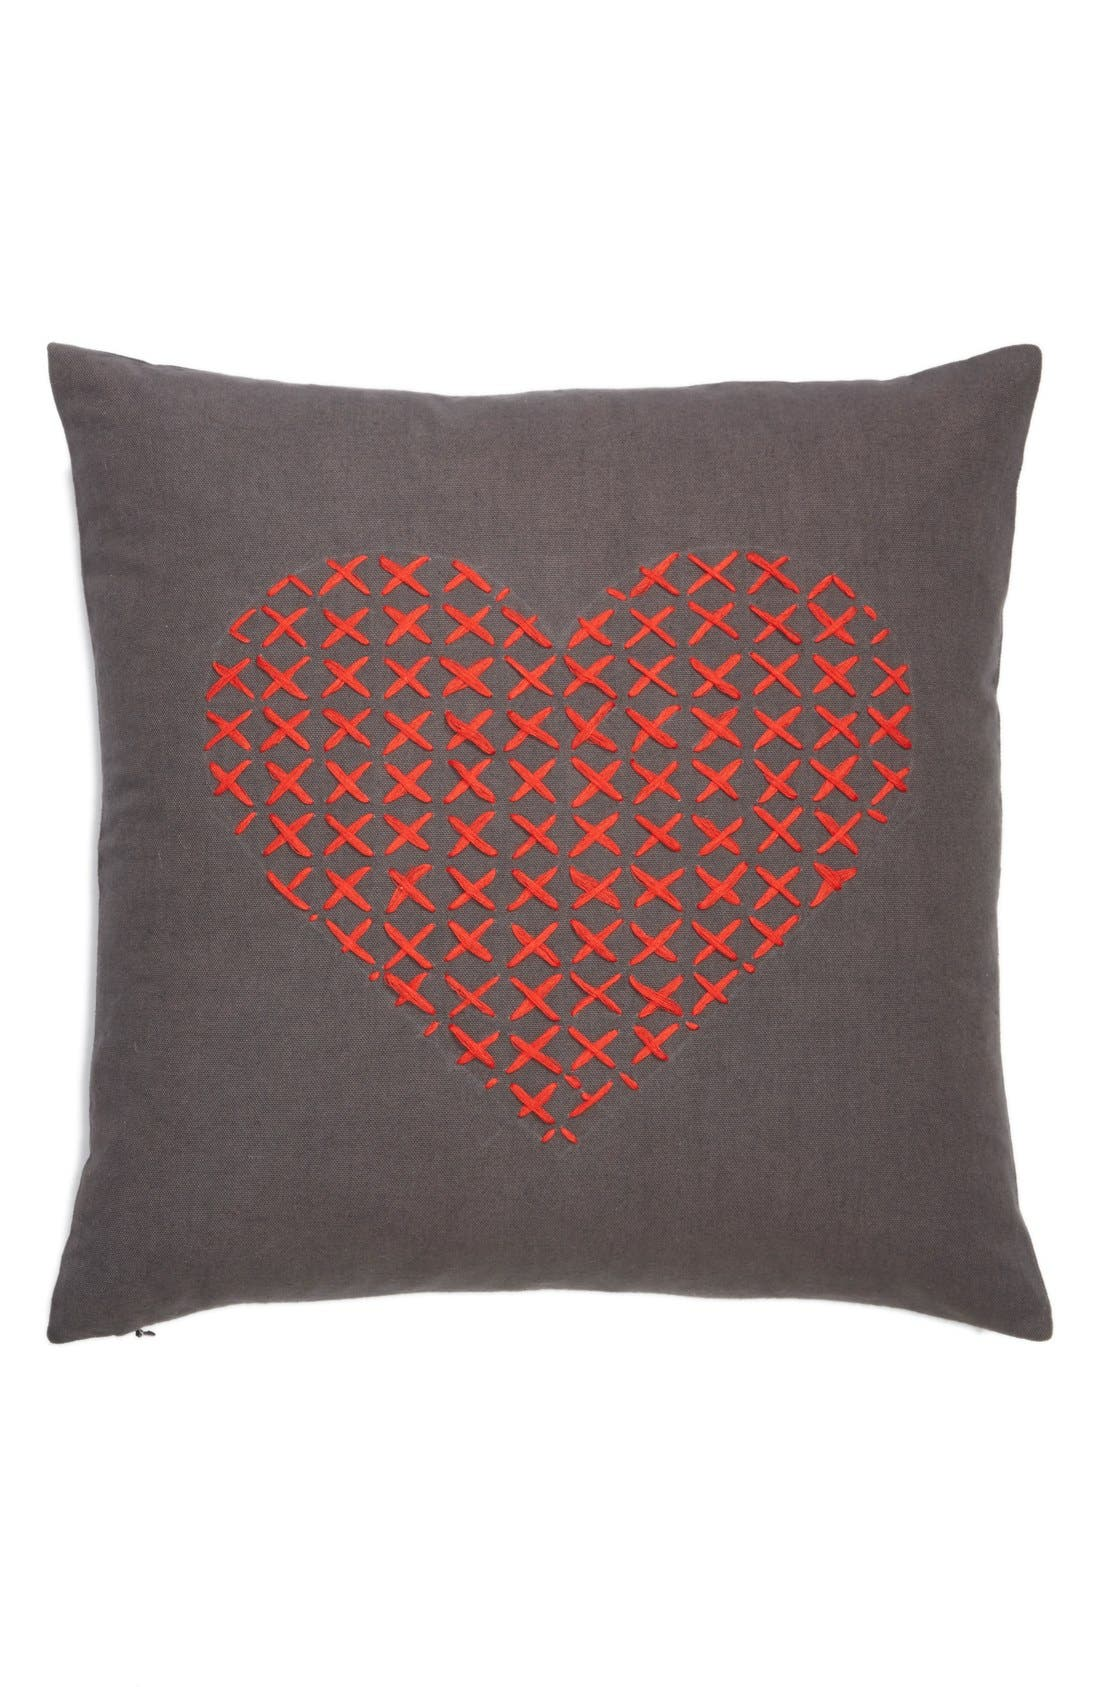 Alternate Image 1 Selected - Nordstrom at Home 'Cross My Heart' Pillow